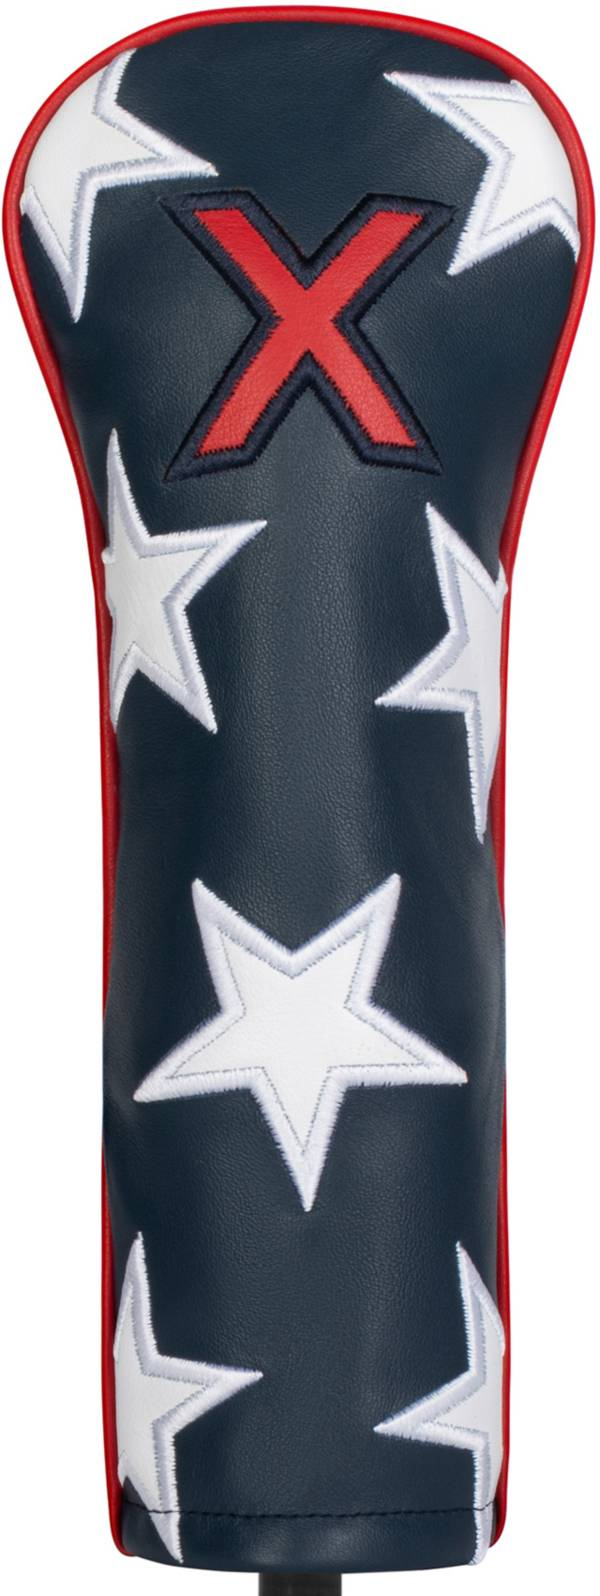 Titleist Stars & Stripes Leather Hybrid Headcover product image